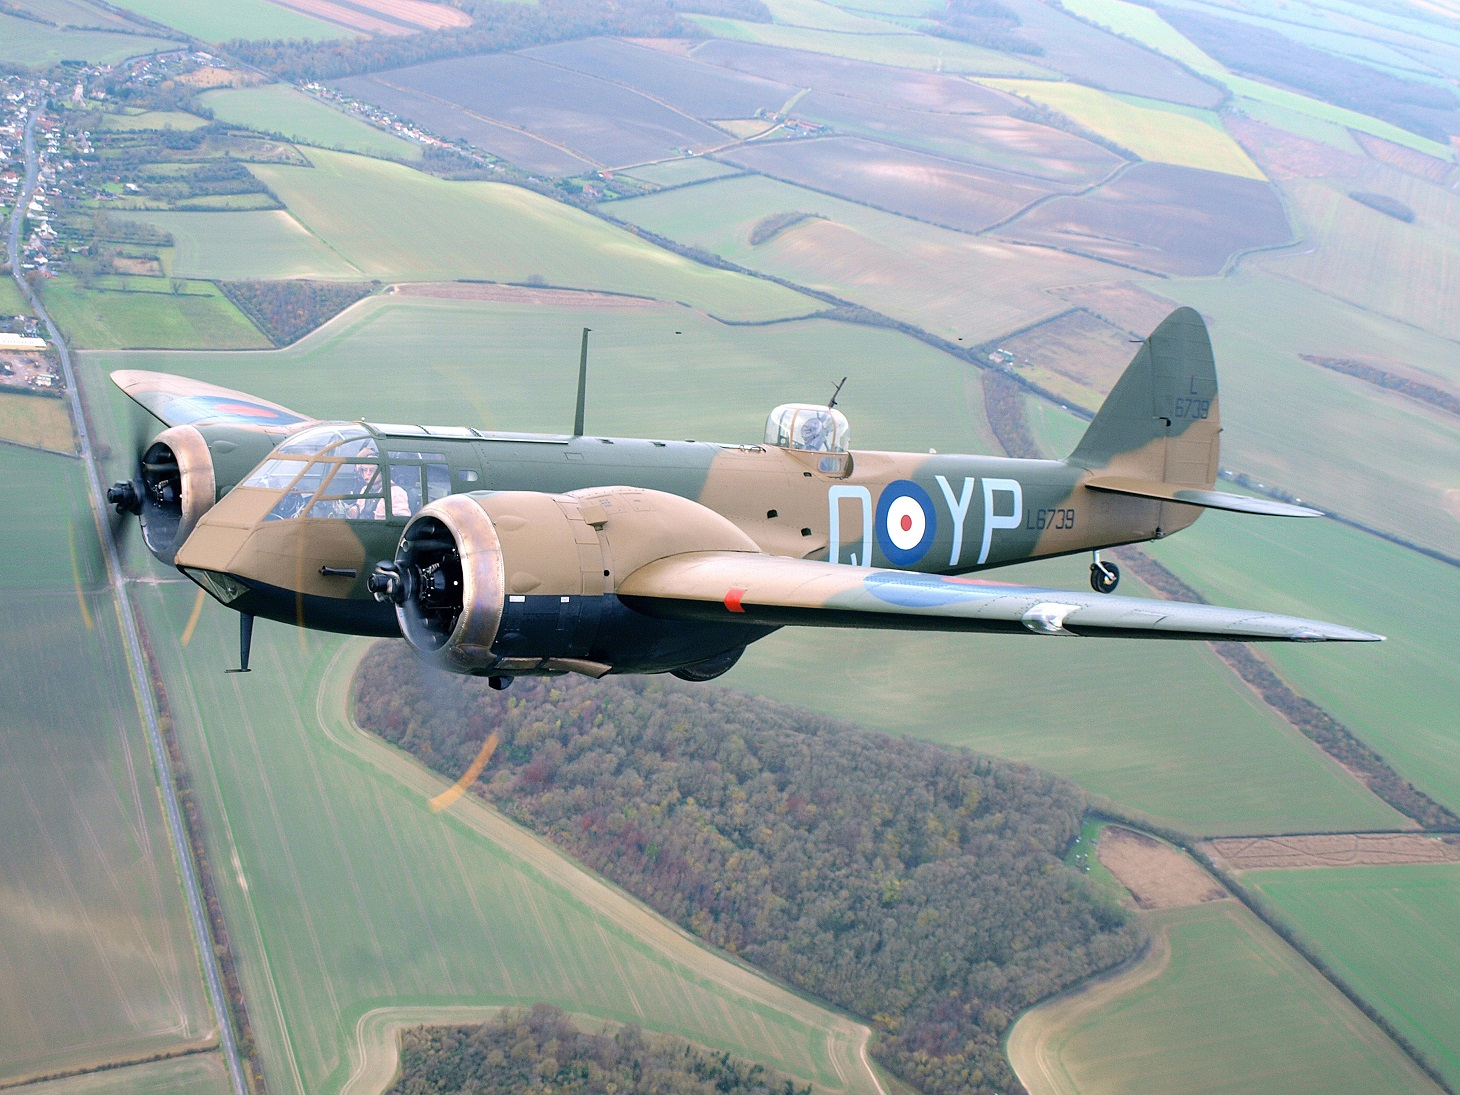 AIRSHOW NEWS: Battle of Britain Warbirds gather at RIAT